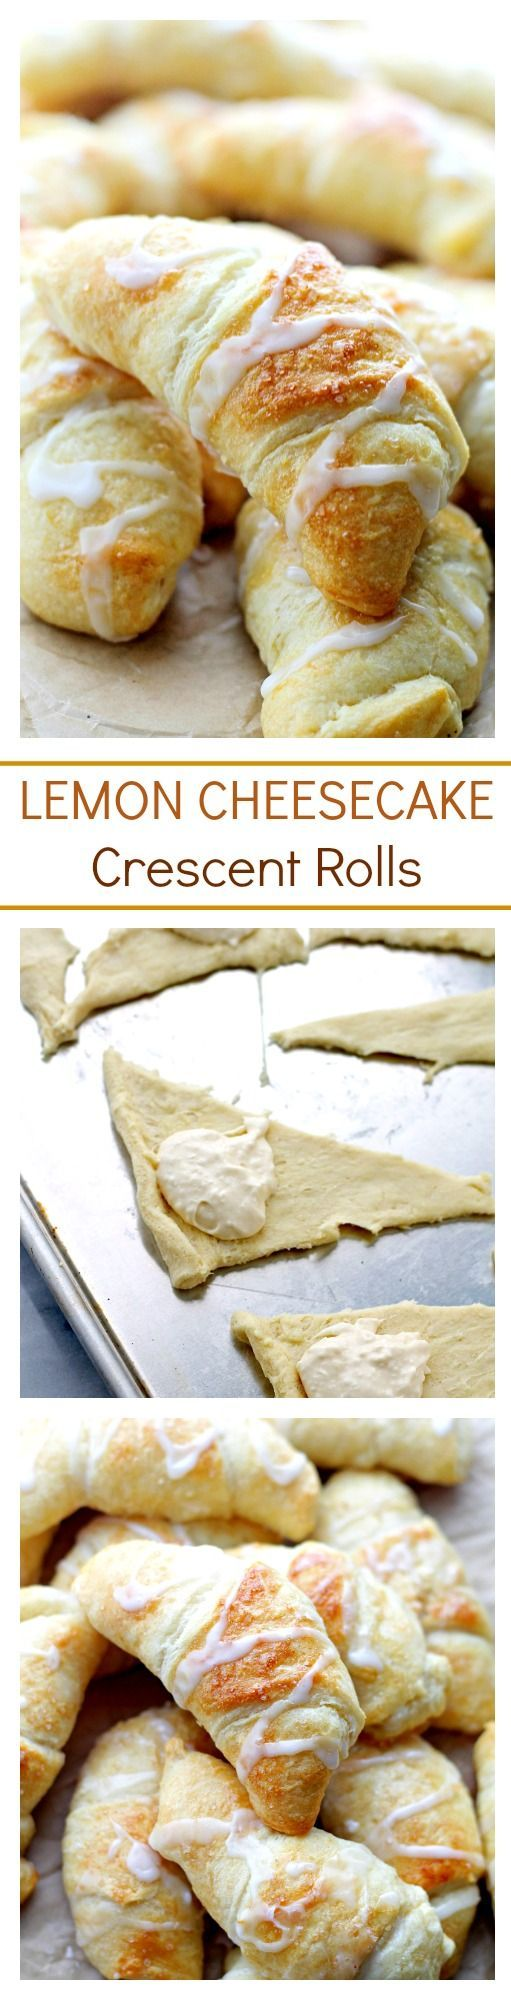 Lemon Cheesecake Crescent Rolls | www.diethood.com | Super easy and incredibly soft Crescent Rolls filled with a sweet and delicious lemon and cream cheese mixture.